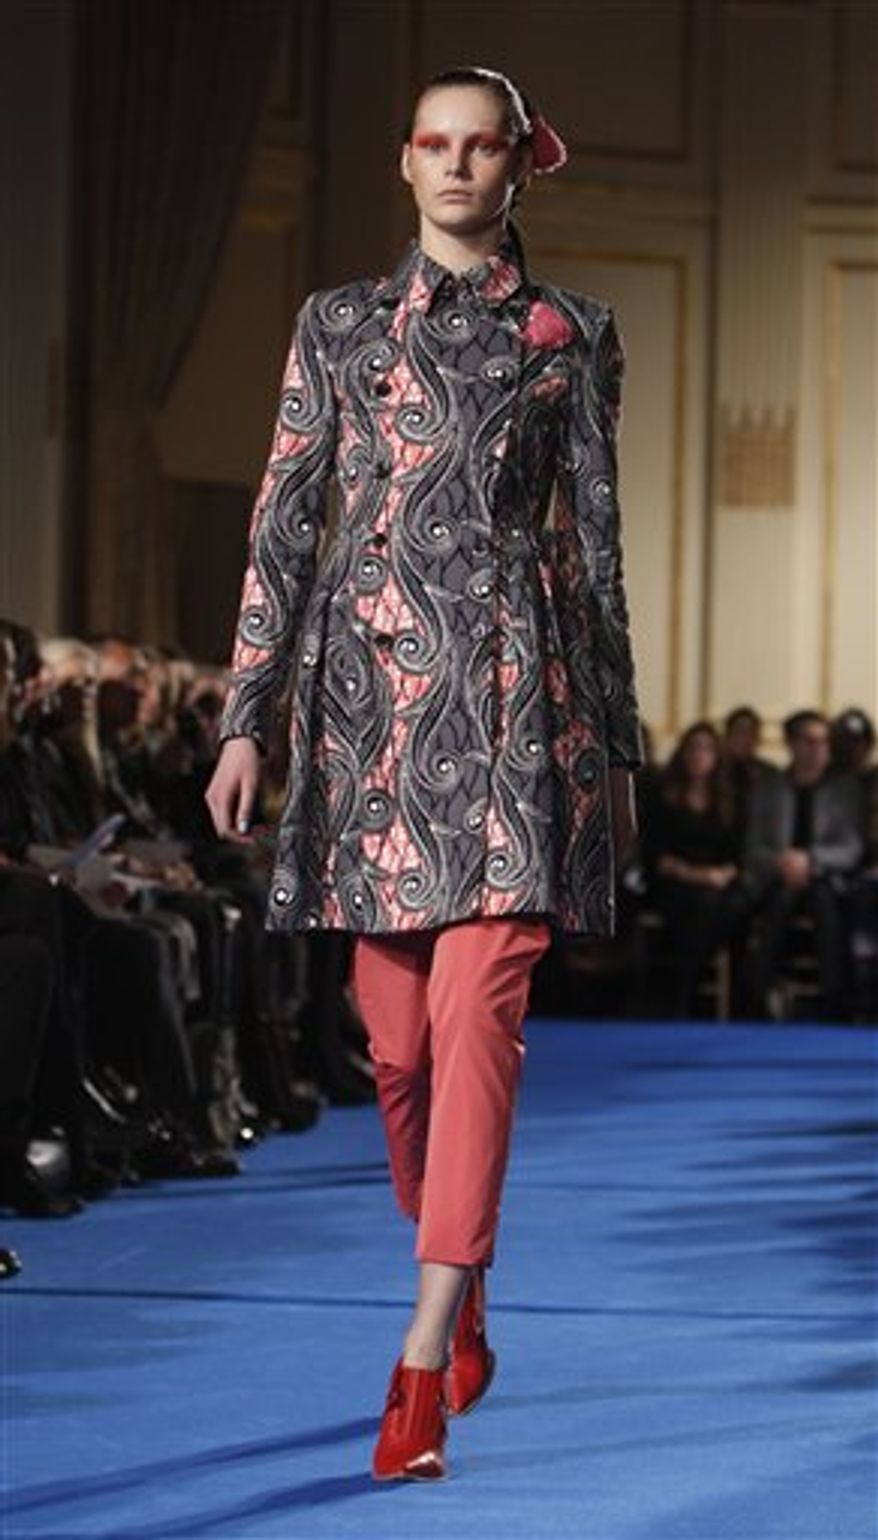 The Thakoon fall 2011 collection is modeled during Fashion Week Sunday, Feb. 13, 2011 in New York. (AP Photo/Jason DeCrow)